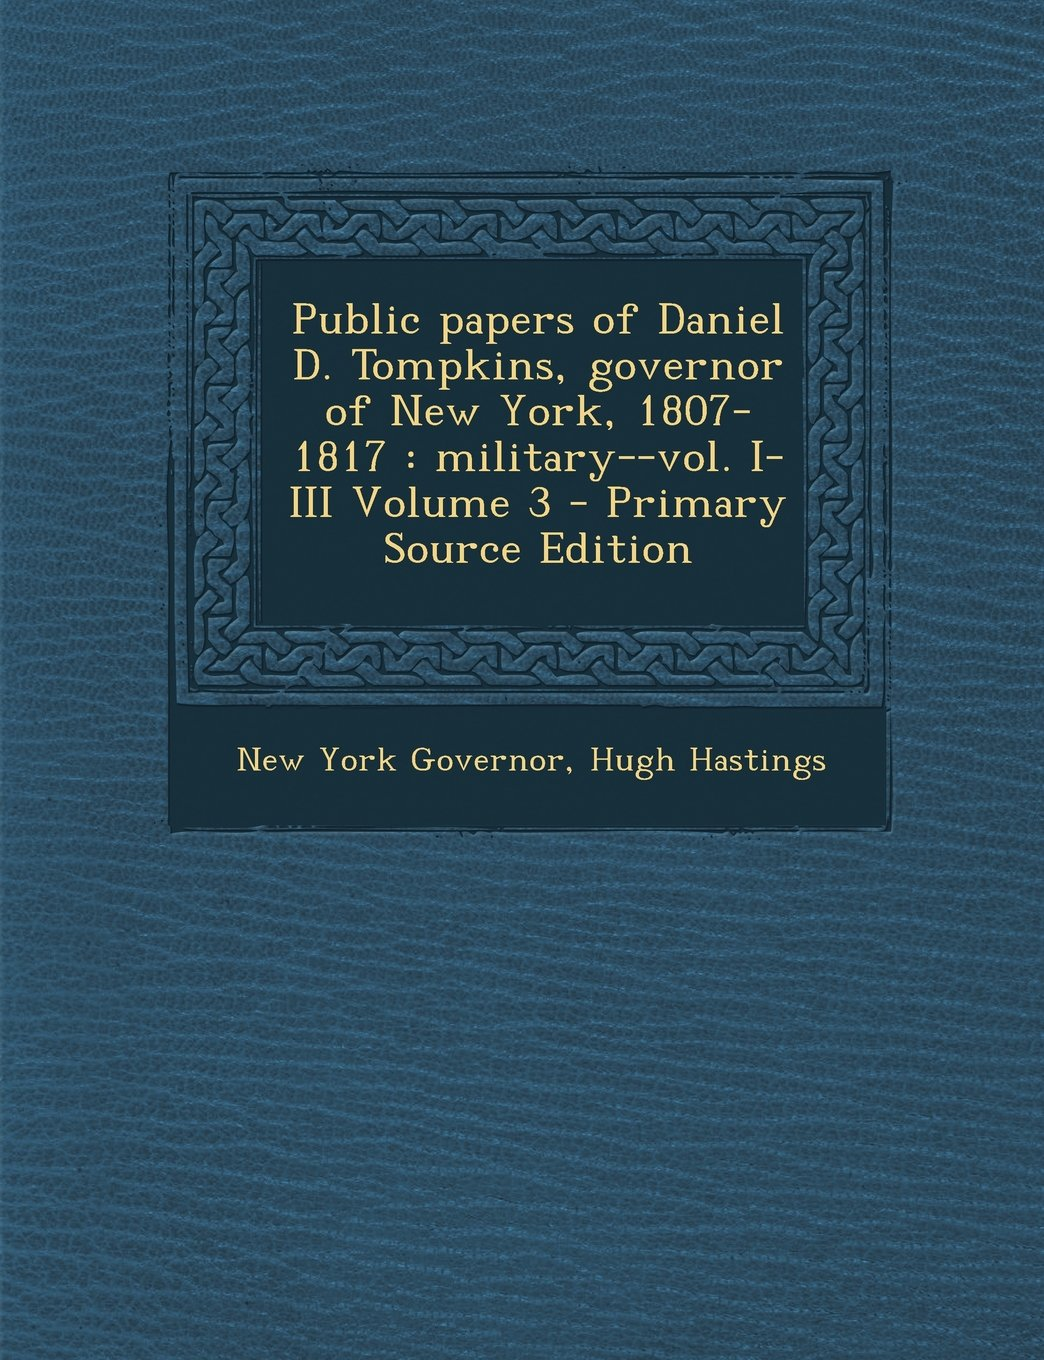 Download Public Papers of Daniel D. Tompkins, Governor of New York, 1807-1817: Military--Vol. I-III Volume 3 - Primary Source Edition ebook